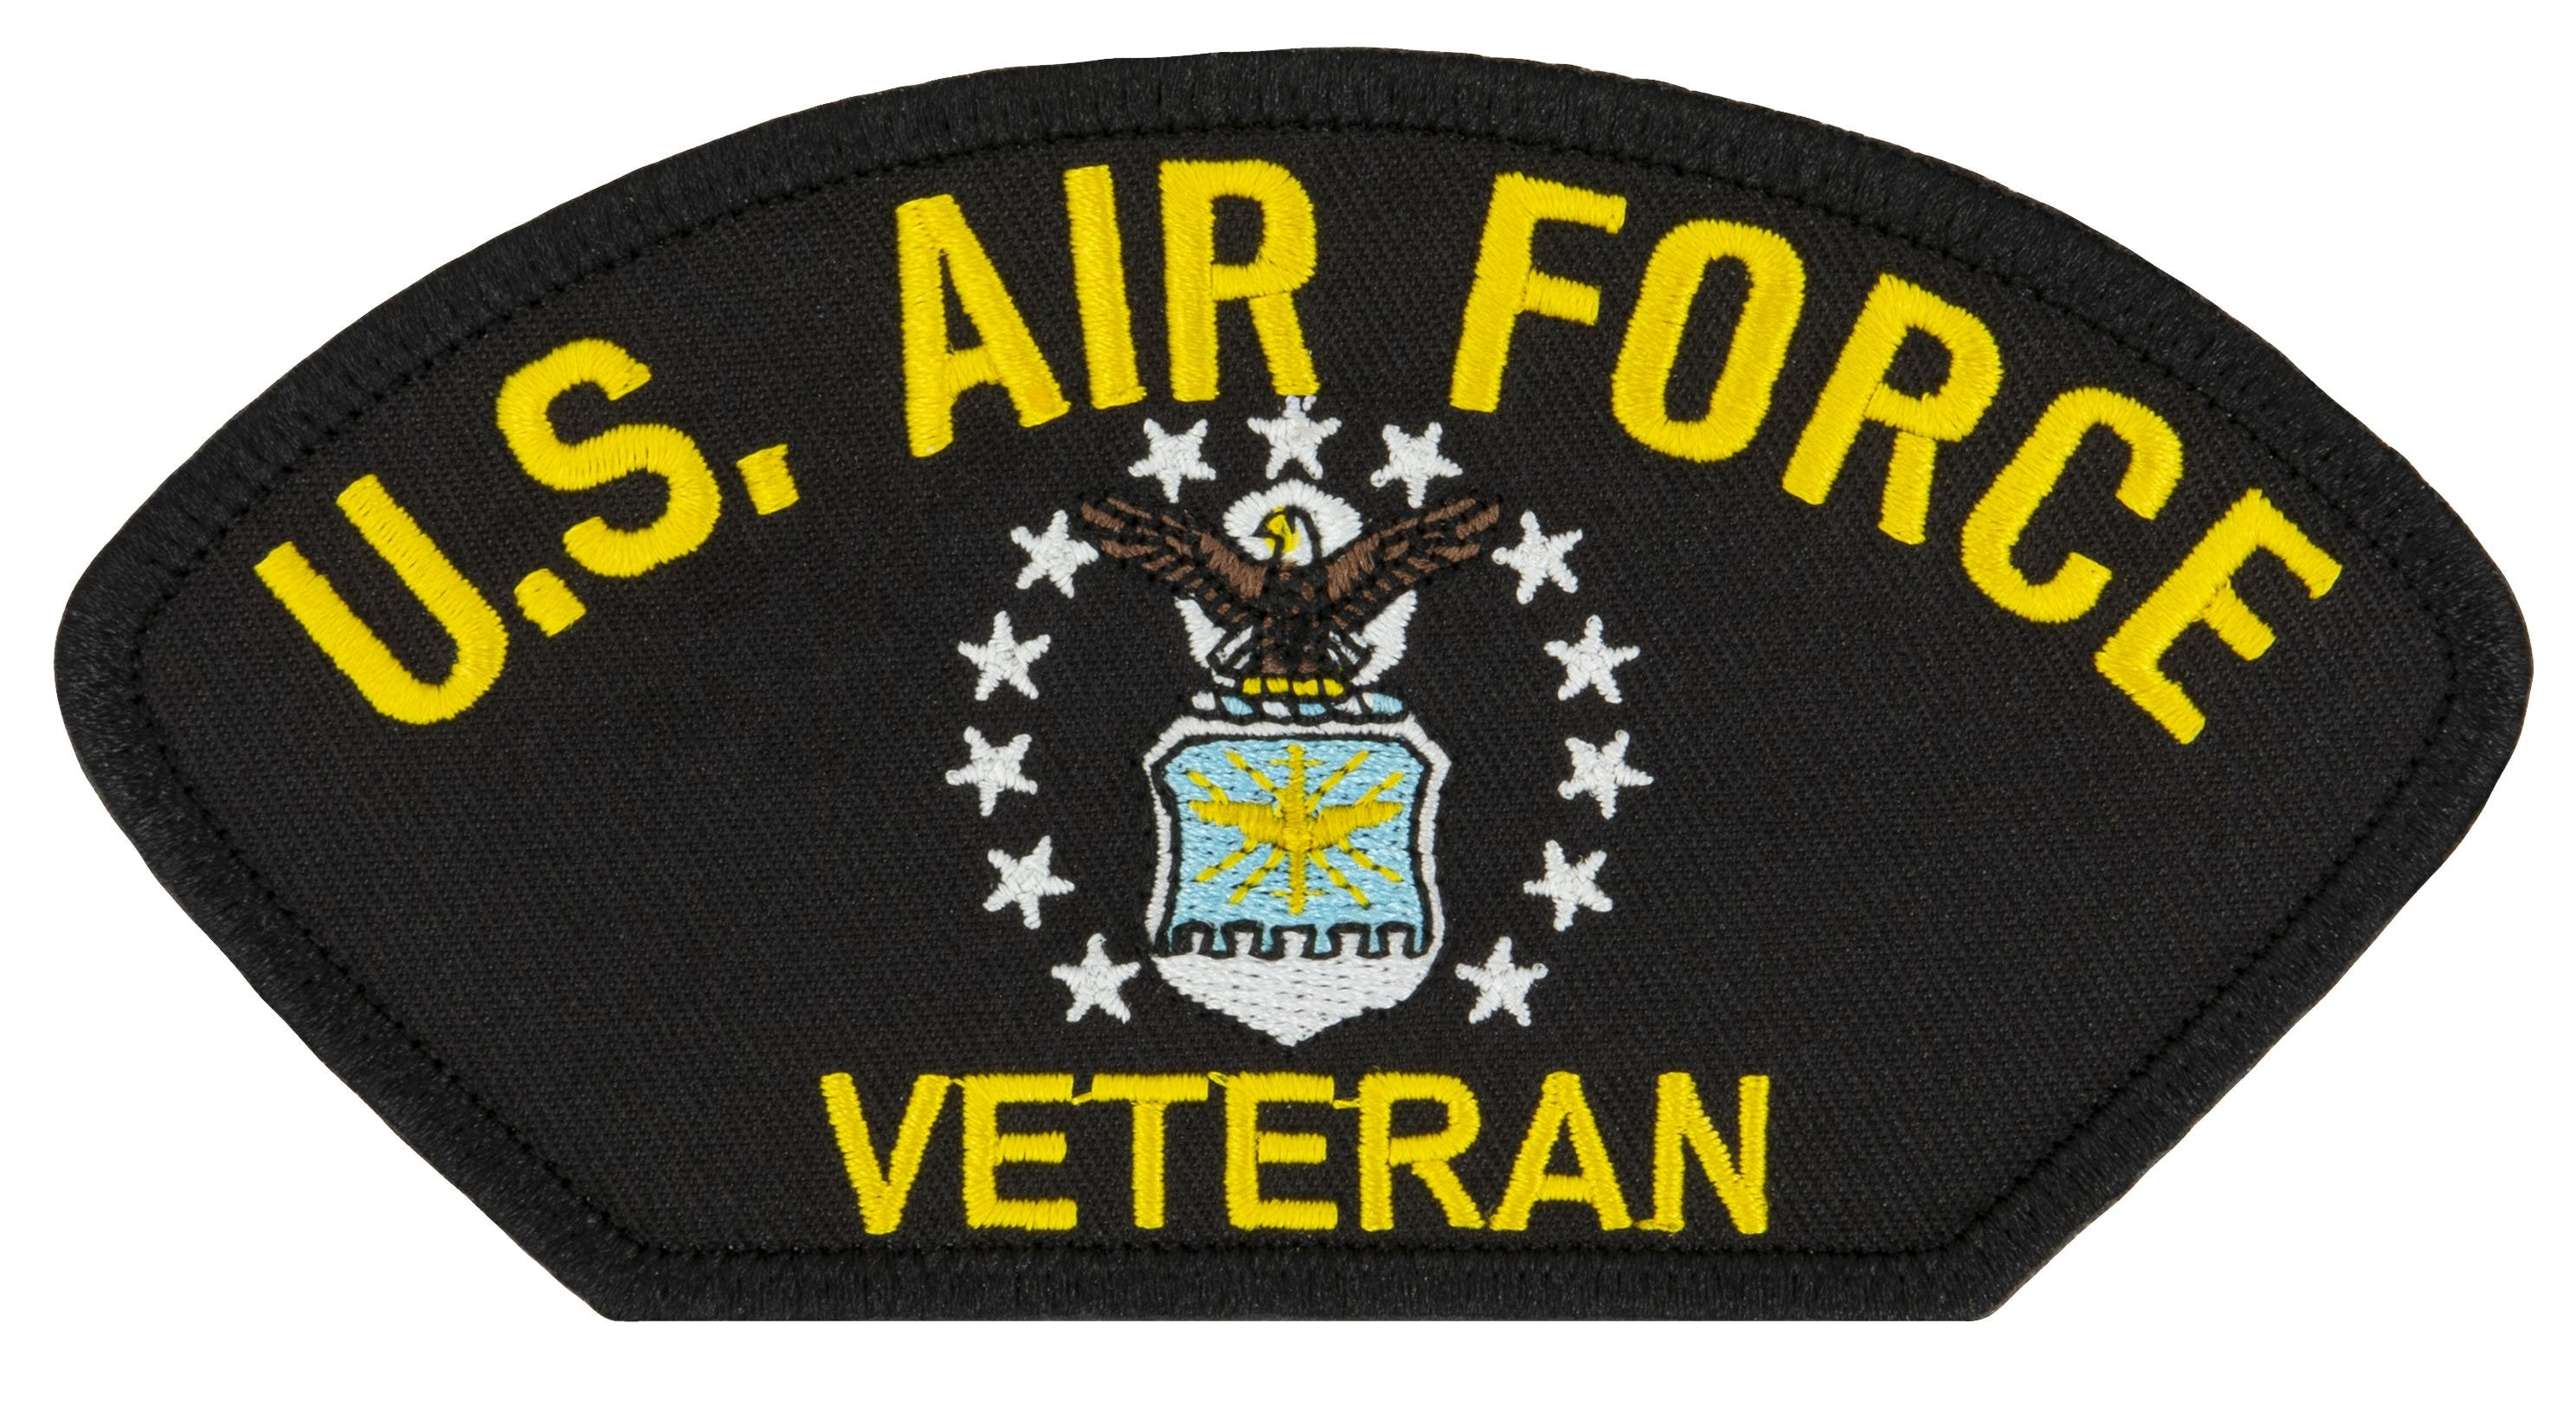 "US Air Force Veteran Embroidered Patch 5 3/16"" x 2 5/8"""